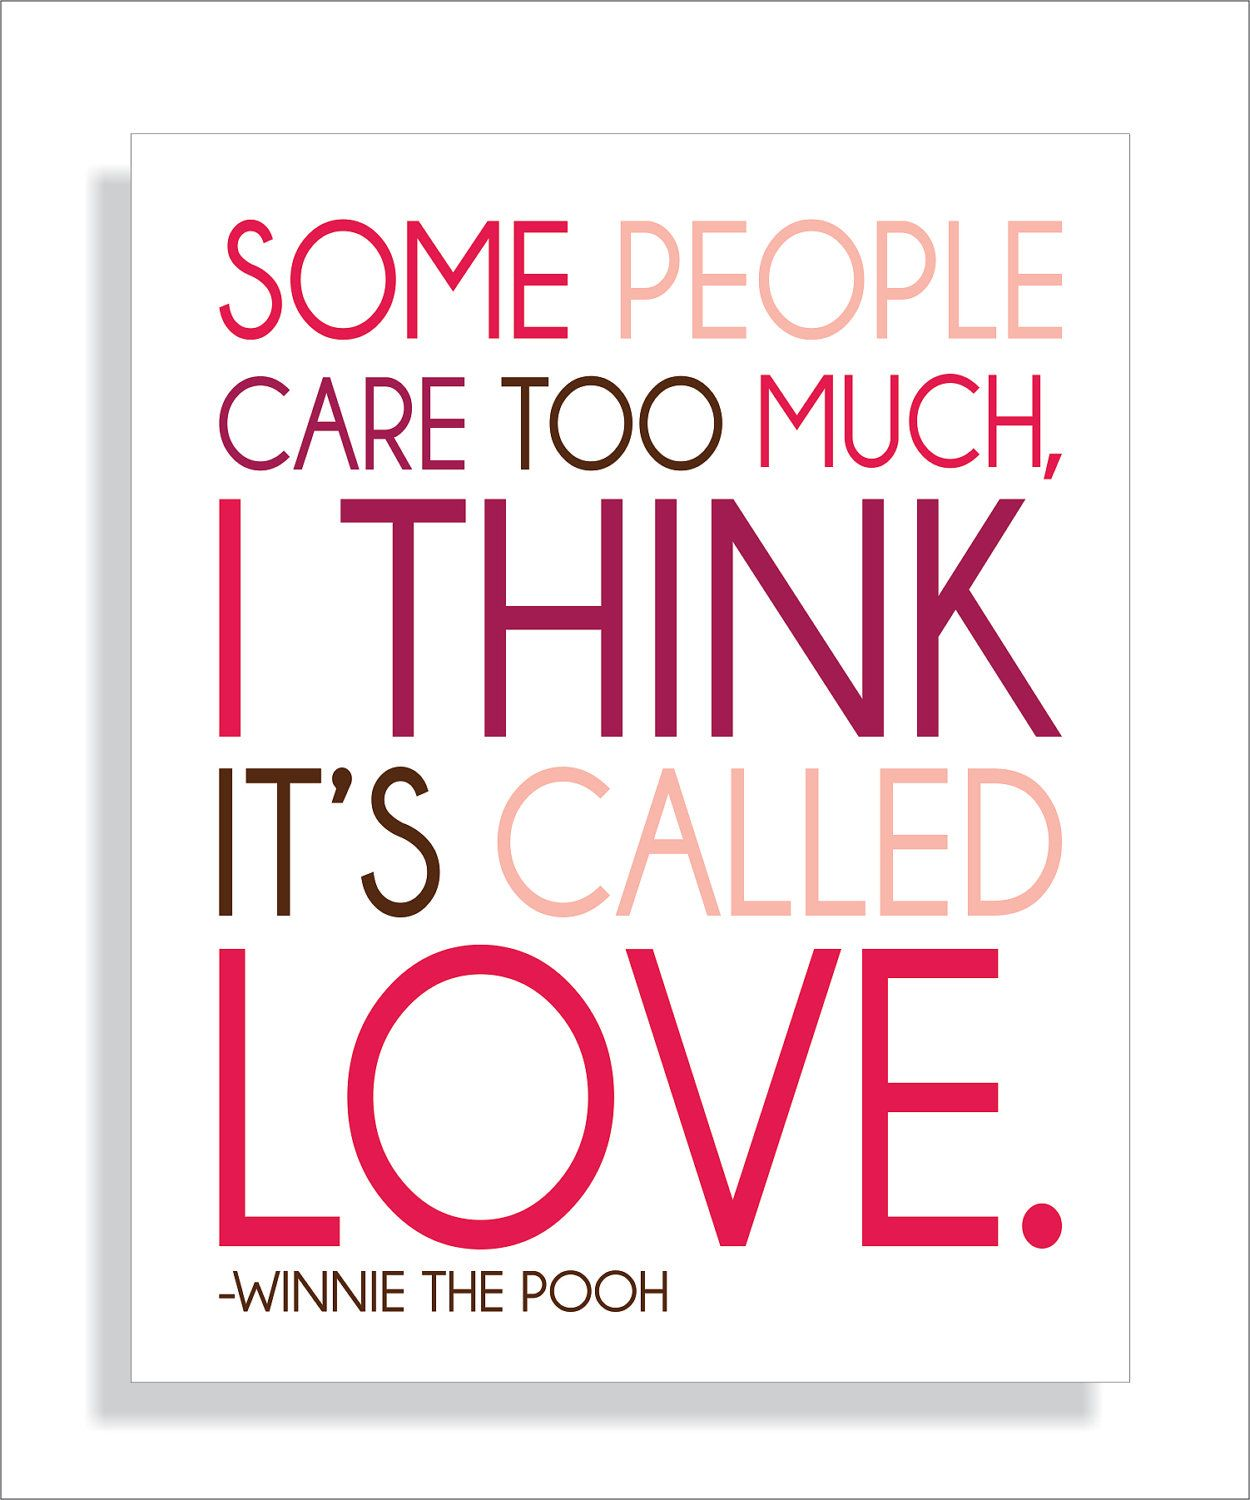 Love Art Quotes Fieldandflower Pooh Bear Quote About Love Art Print8X10